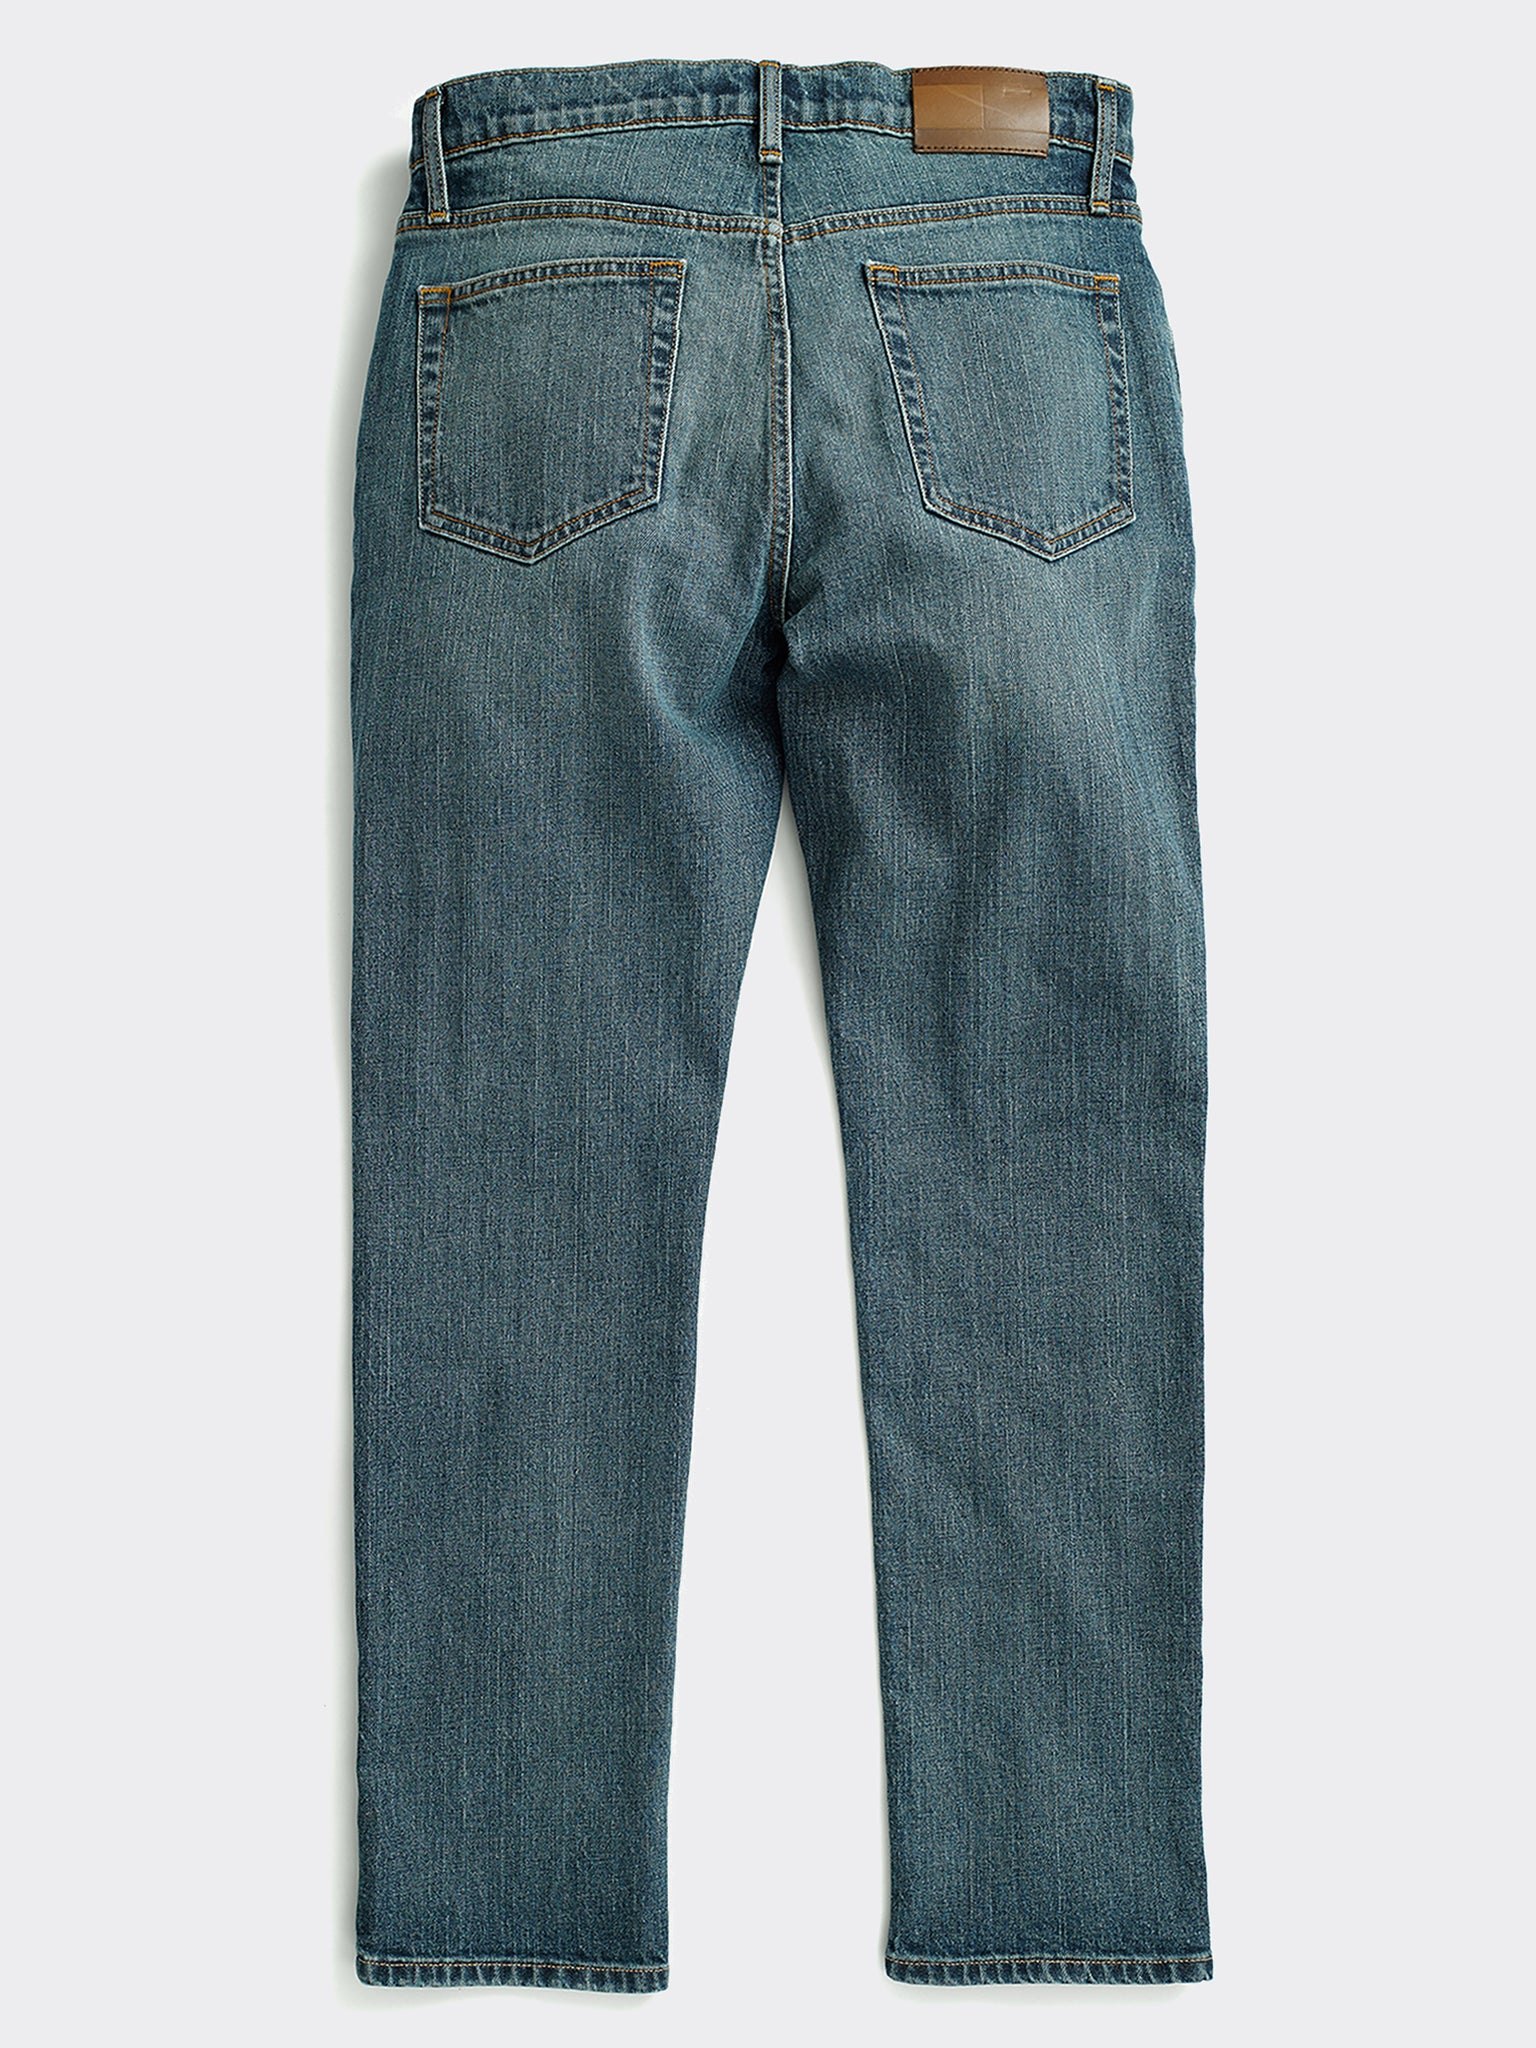 Straight Cut Tommy Jeans - Medium Wash